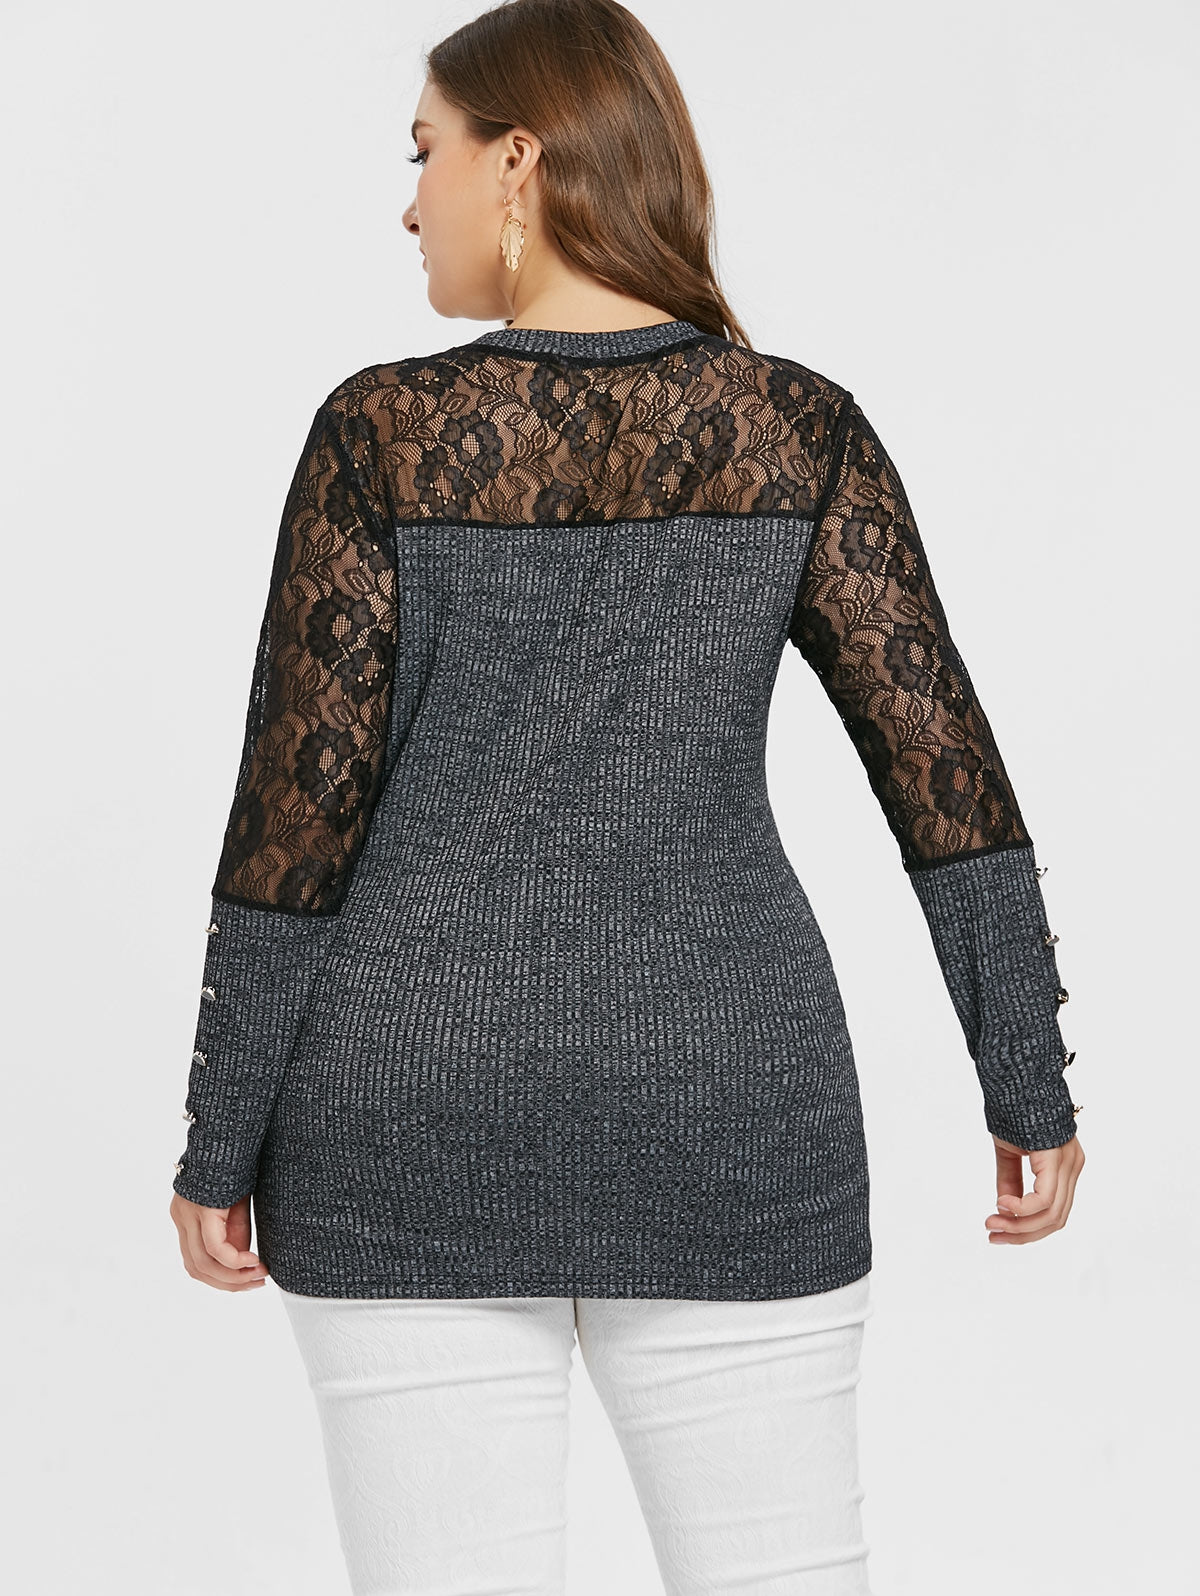 Plus Size Lace Insert Marled Knitwear - That Swag Tho